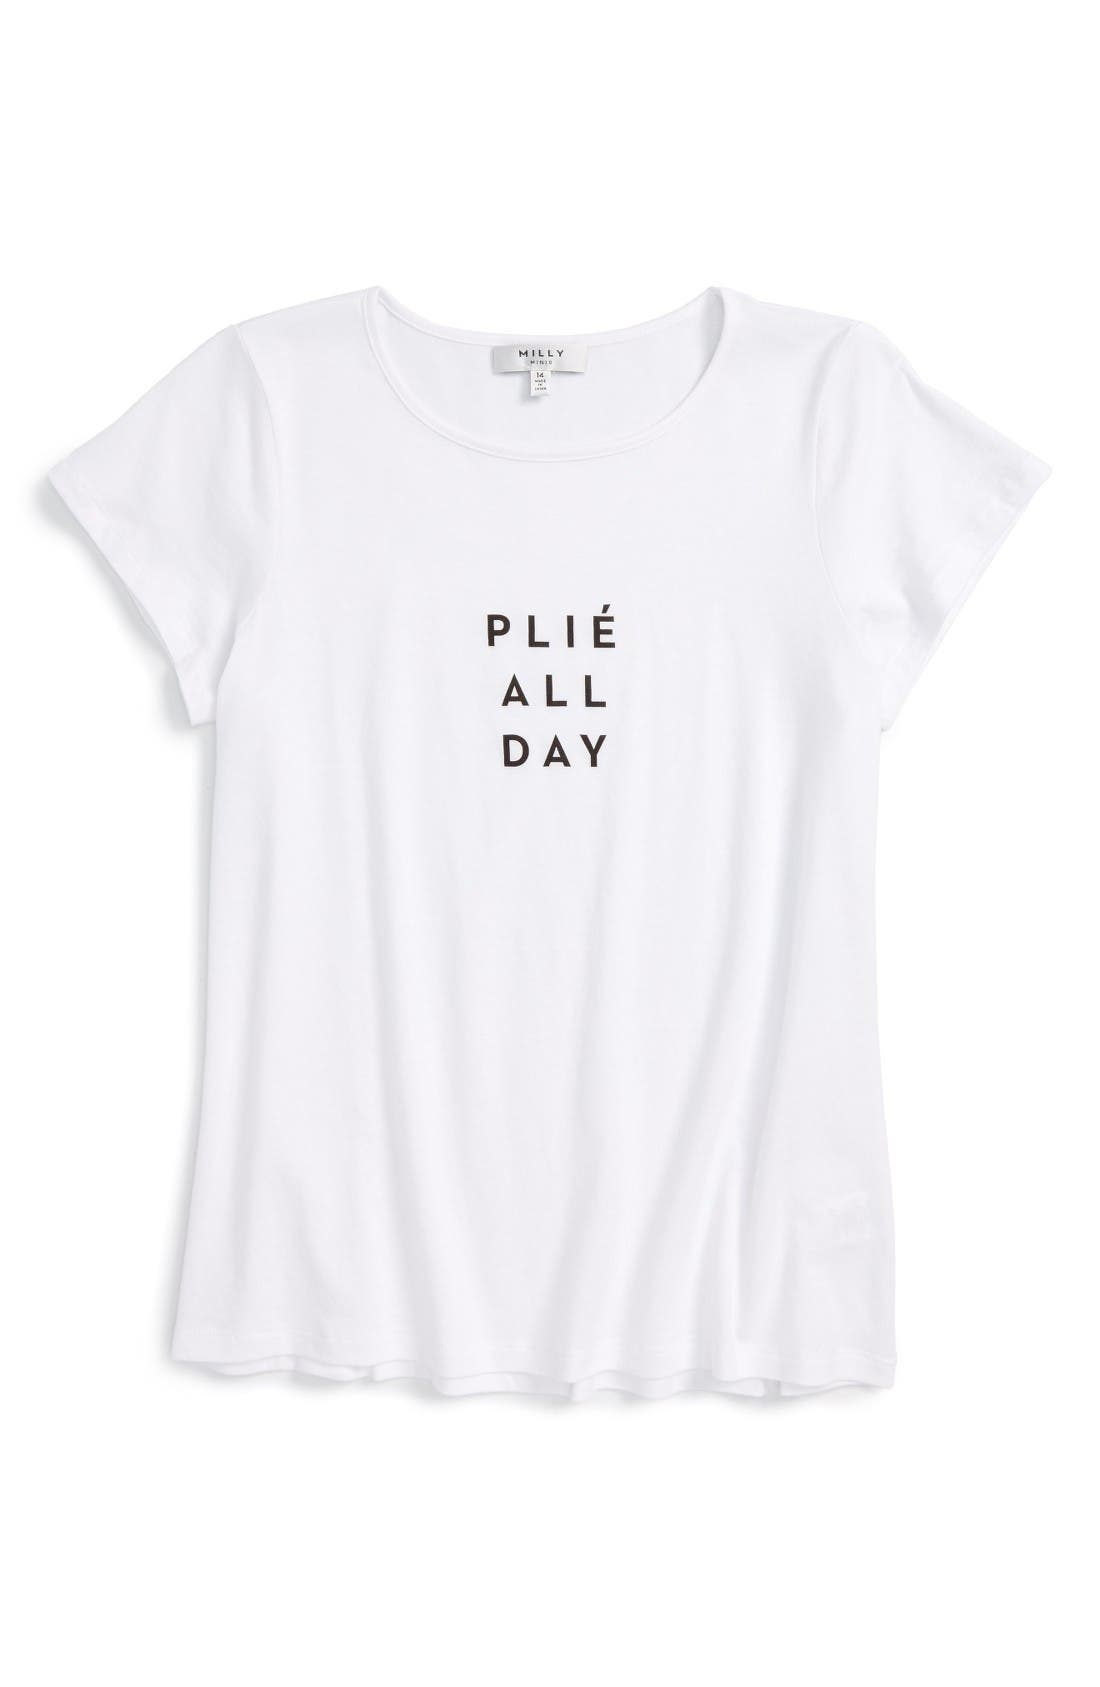 MILLY MINIS Plié All Day Graphic Tee